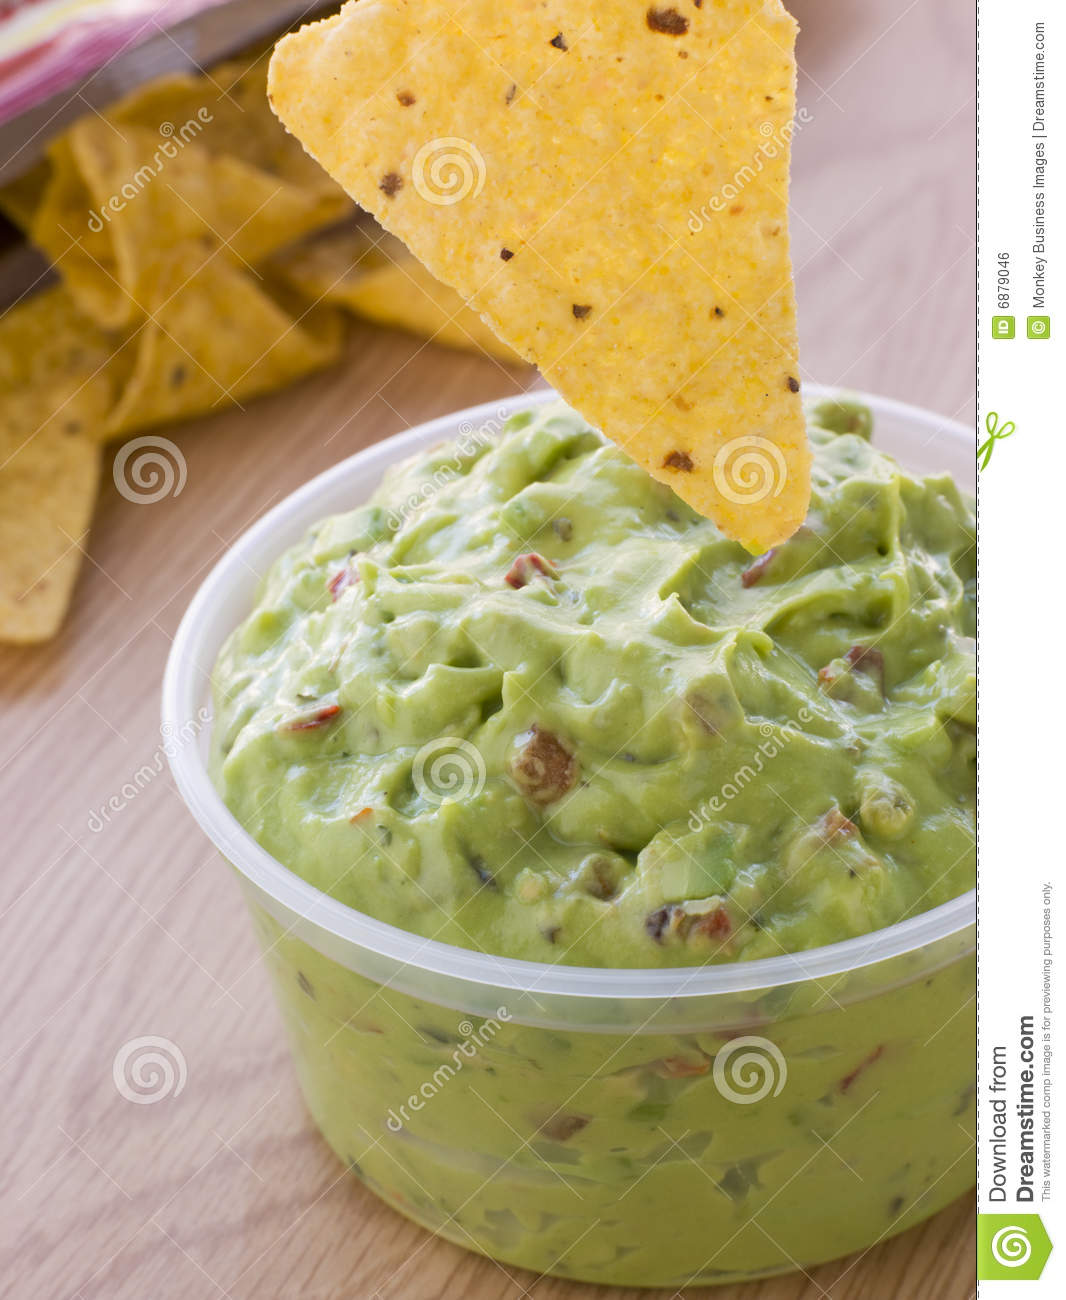 Pot Of Guacamole With A Corn Tortilla Crisp Royalty Free Stock Image ...